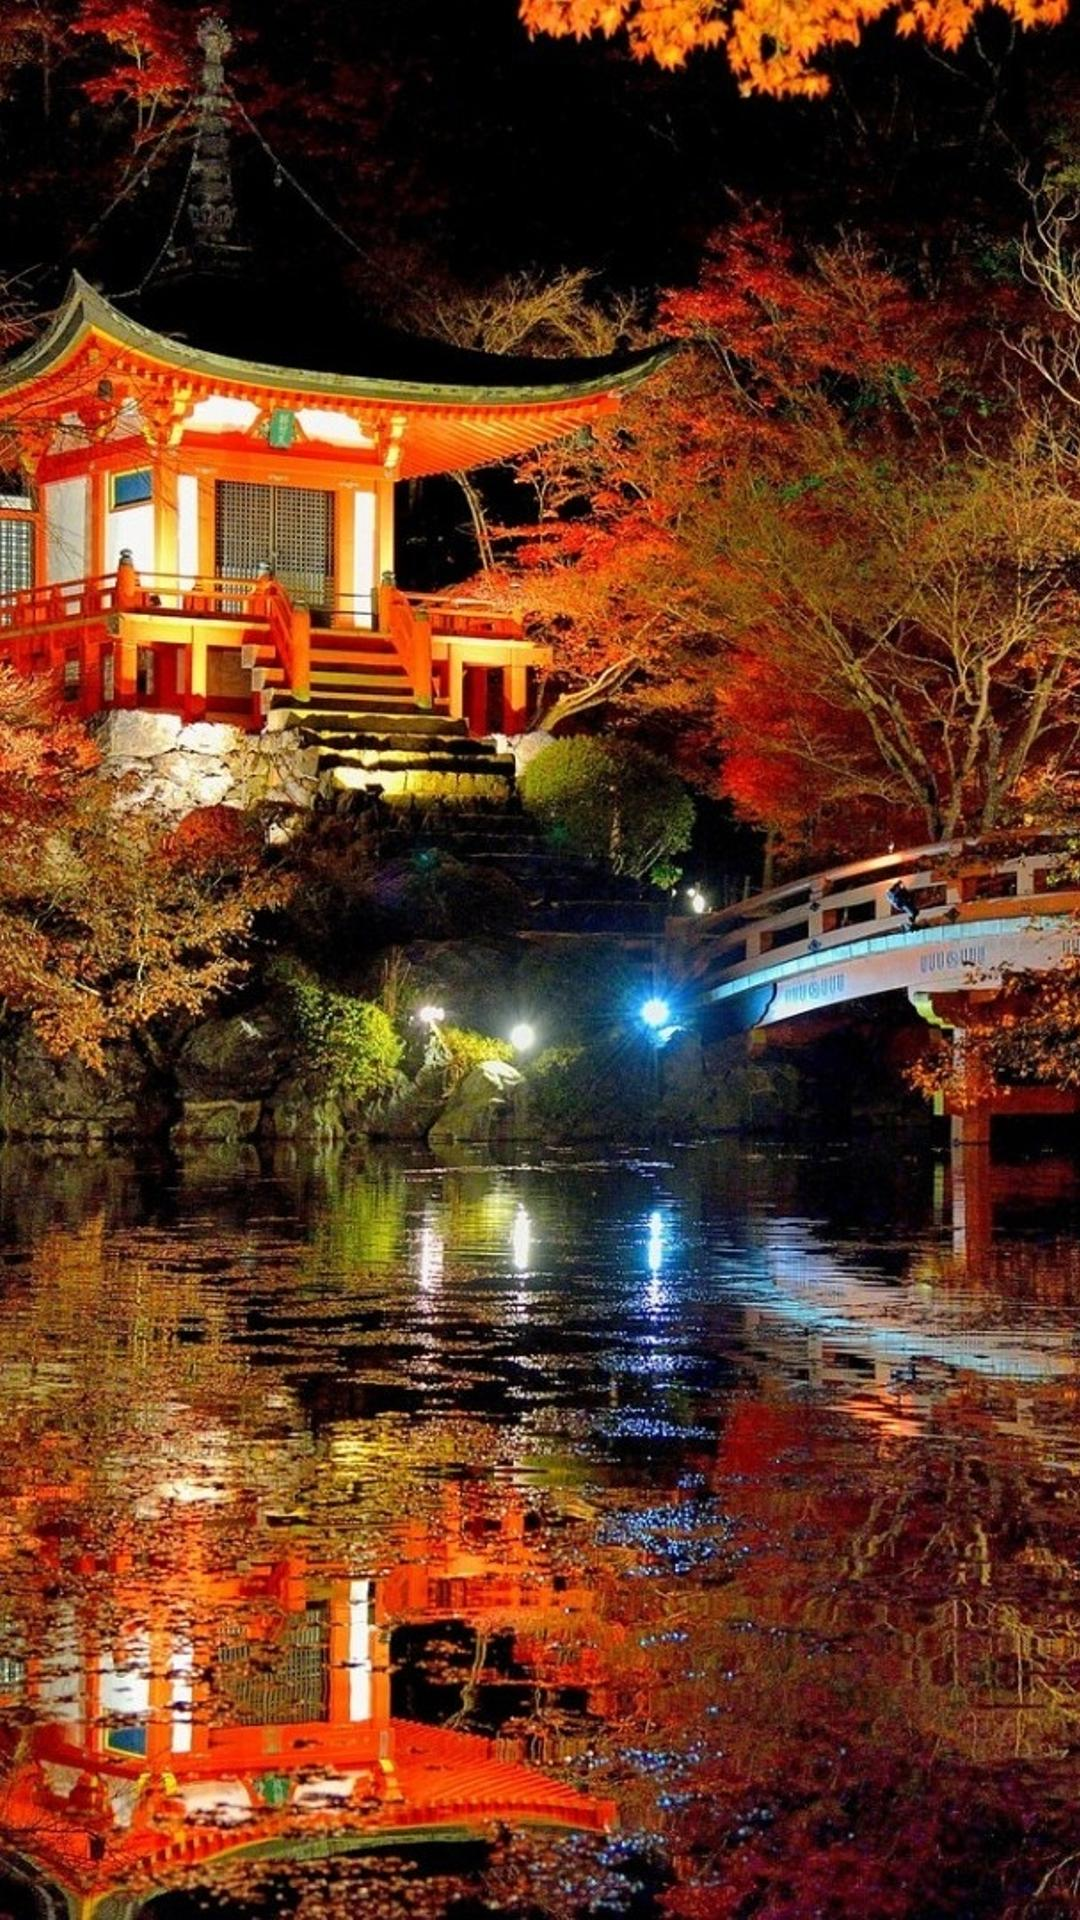 Best Wallpaper Night Japanese Garden - an-amazing-japanese-garden-colorful-nature-1080x1920  Graphic-59777.jpg